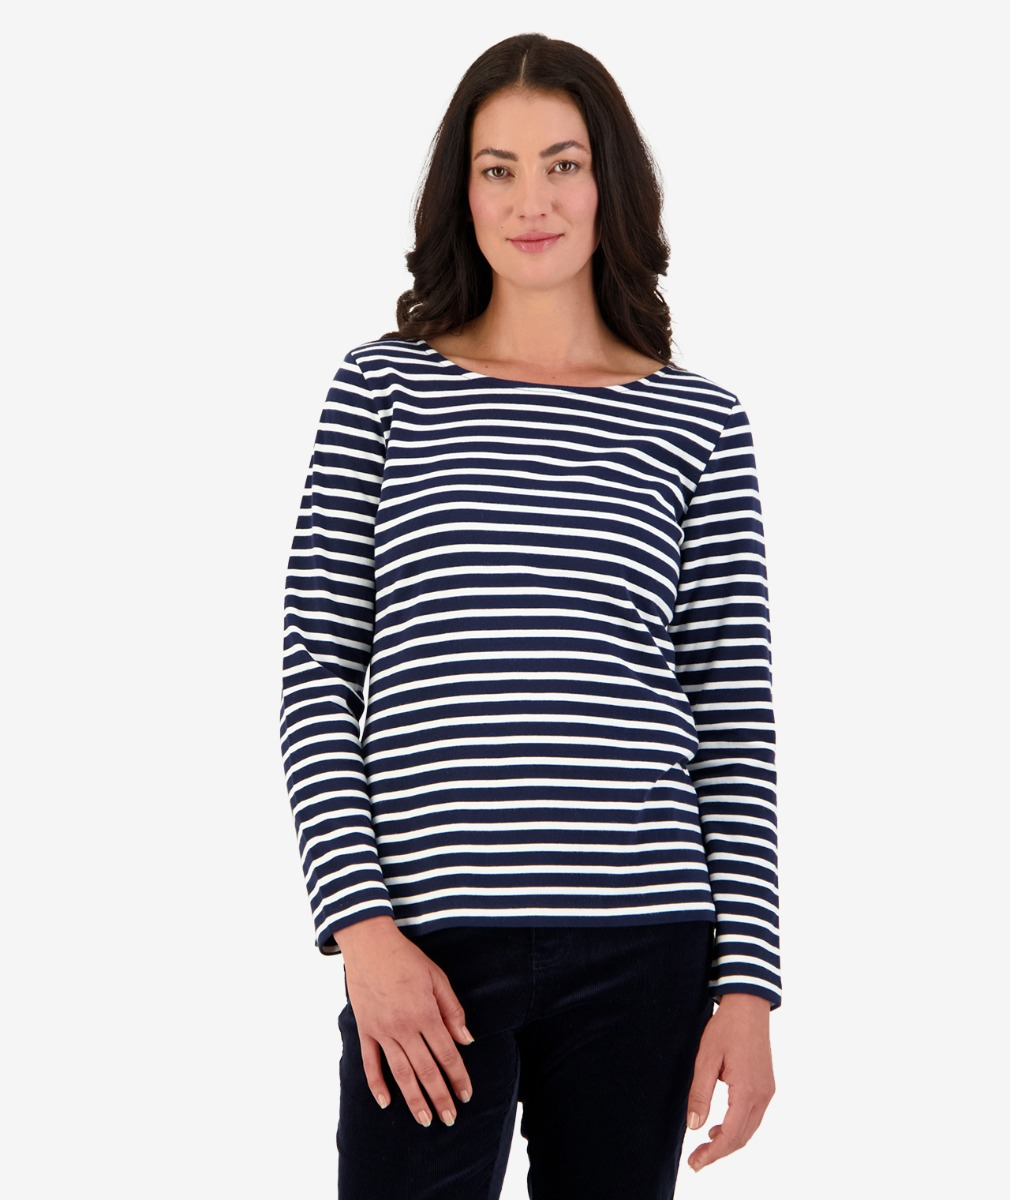 Coniston L/S Breton Top in Navy/White